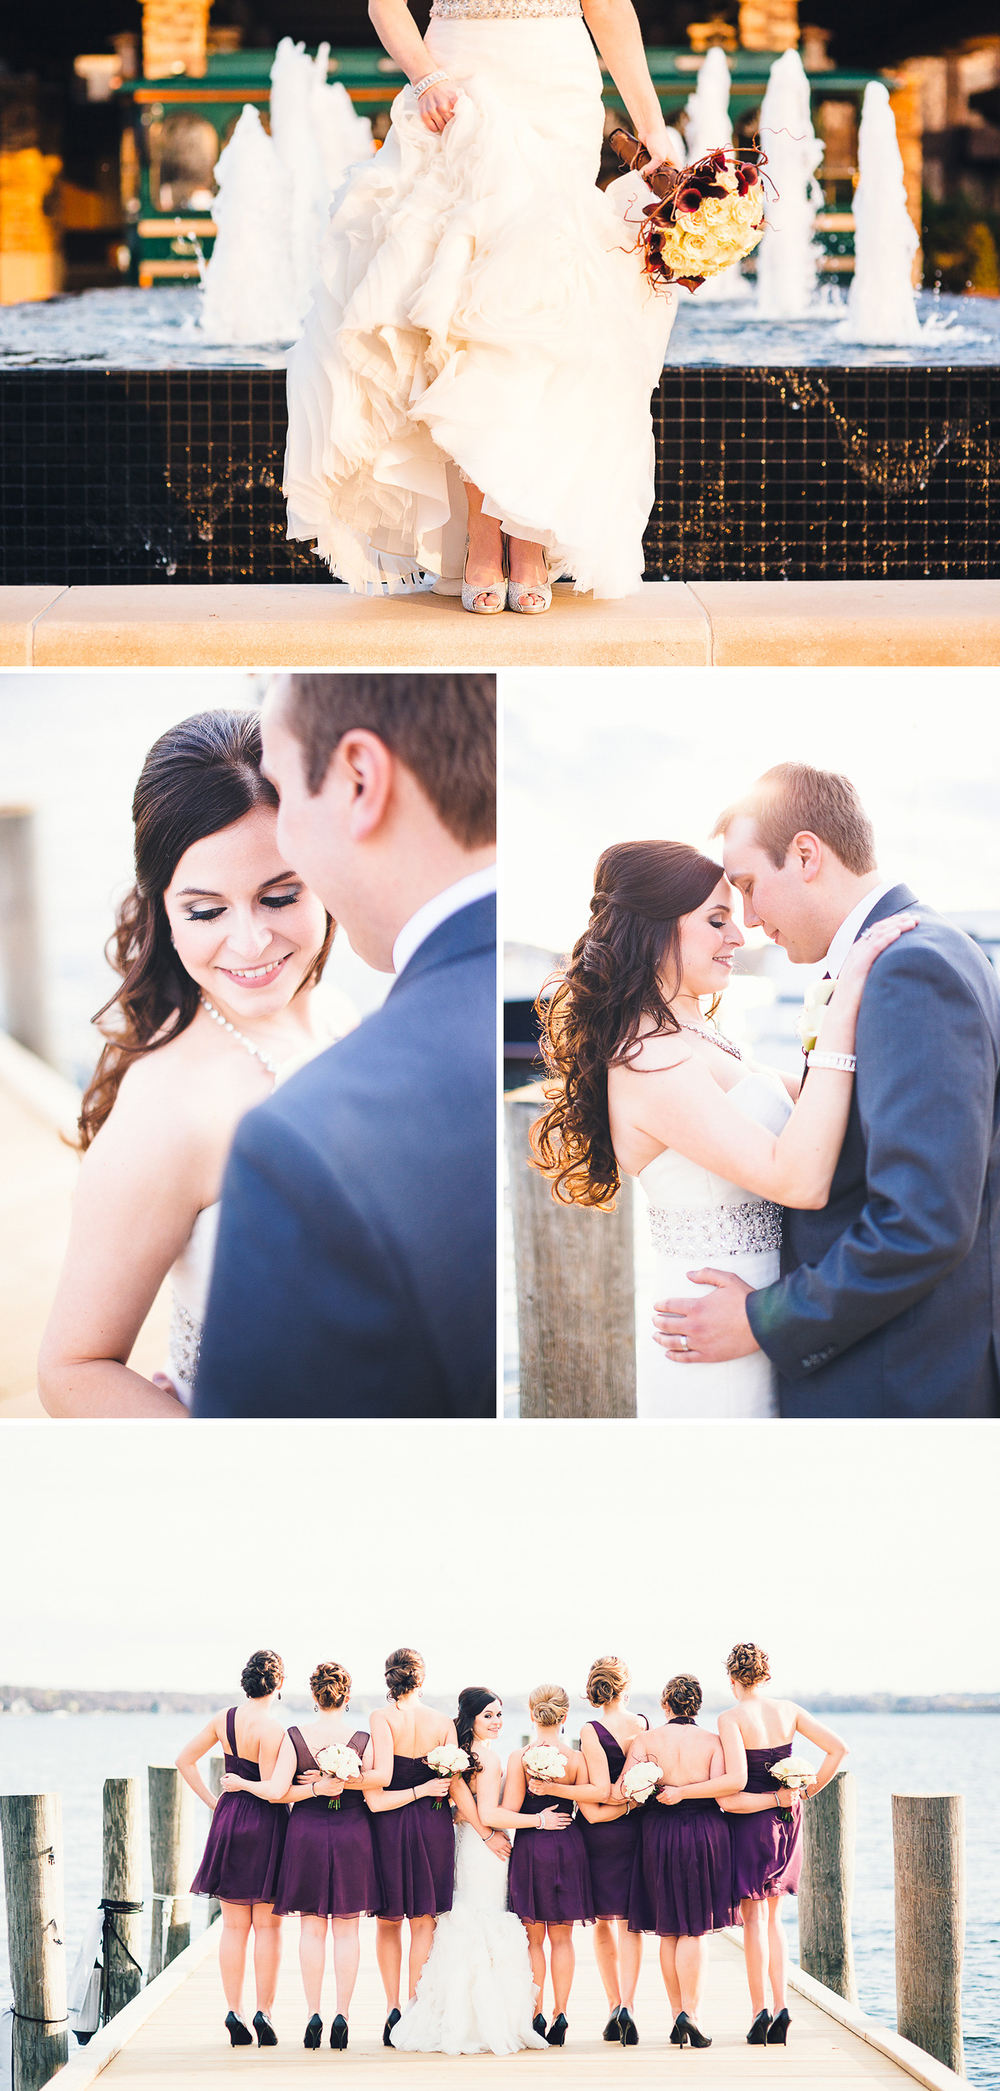 Chicago_Fine_Art_Wedding_Photography_vanthoff.jpg